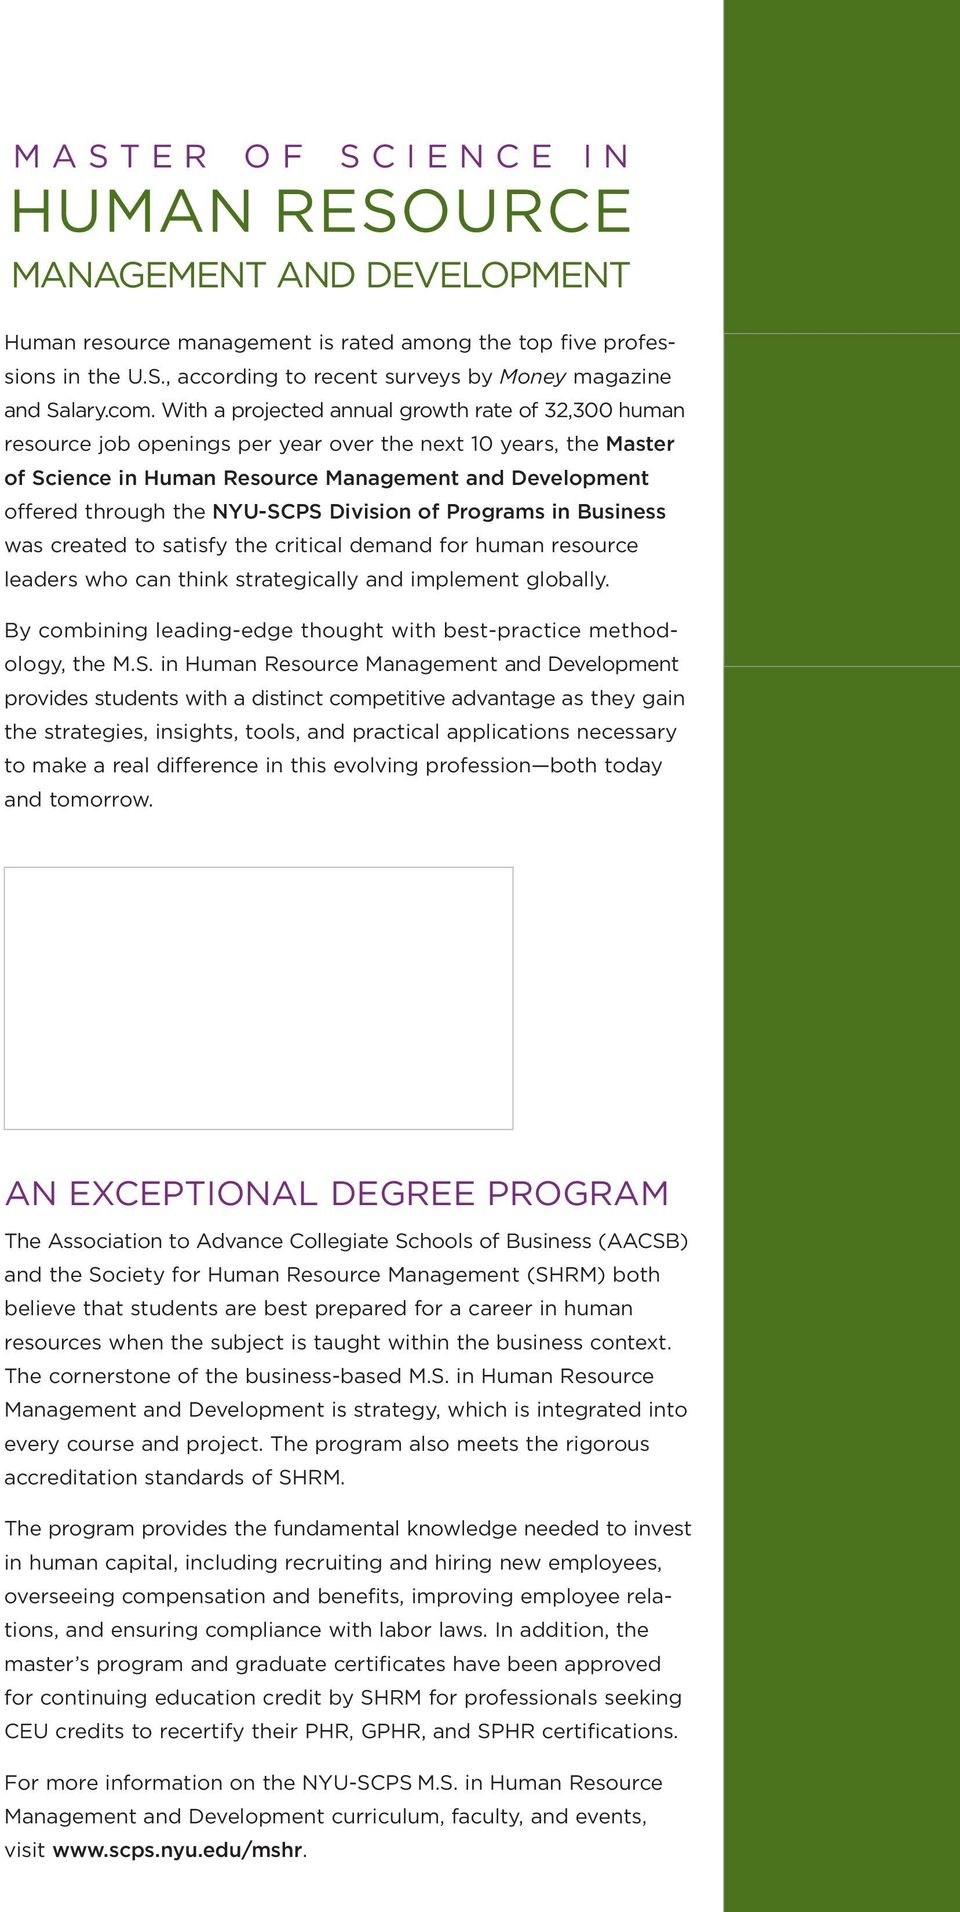 NYU-SCPS Division of Programs in Business was created to satisfy the critical demand for human resource leaders who can think strategically and implement globally.